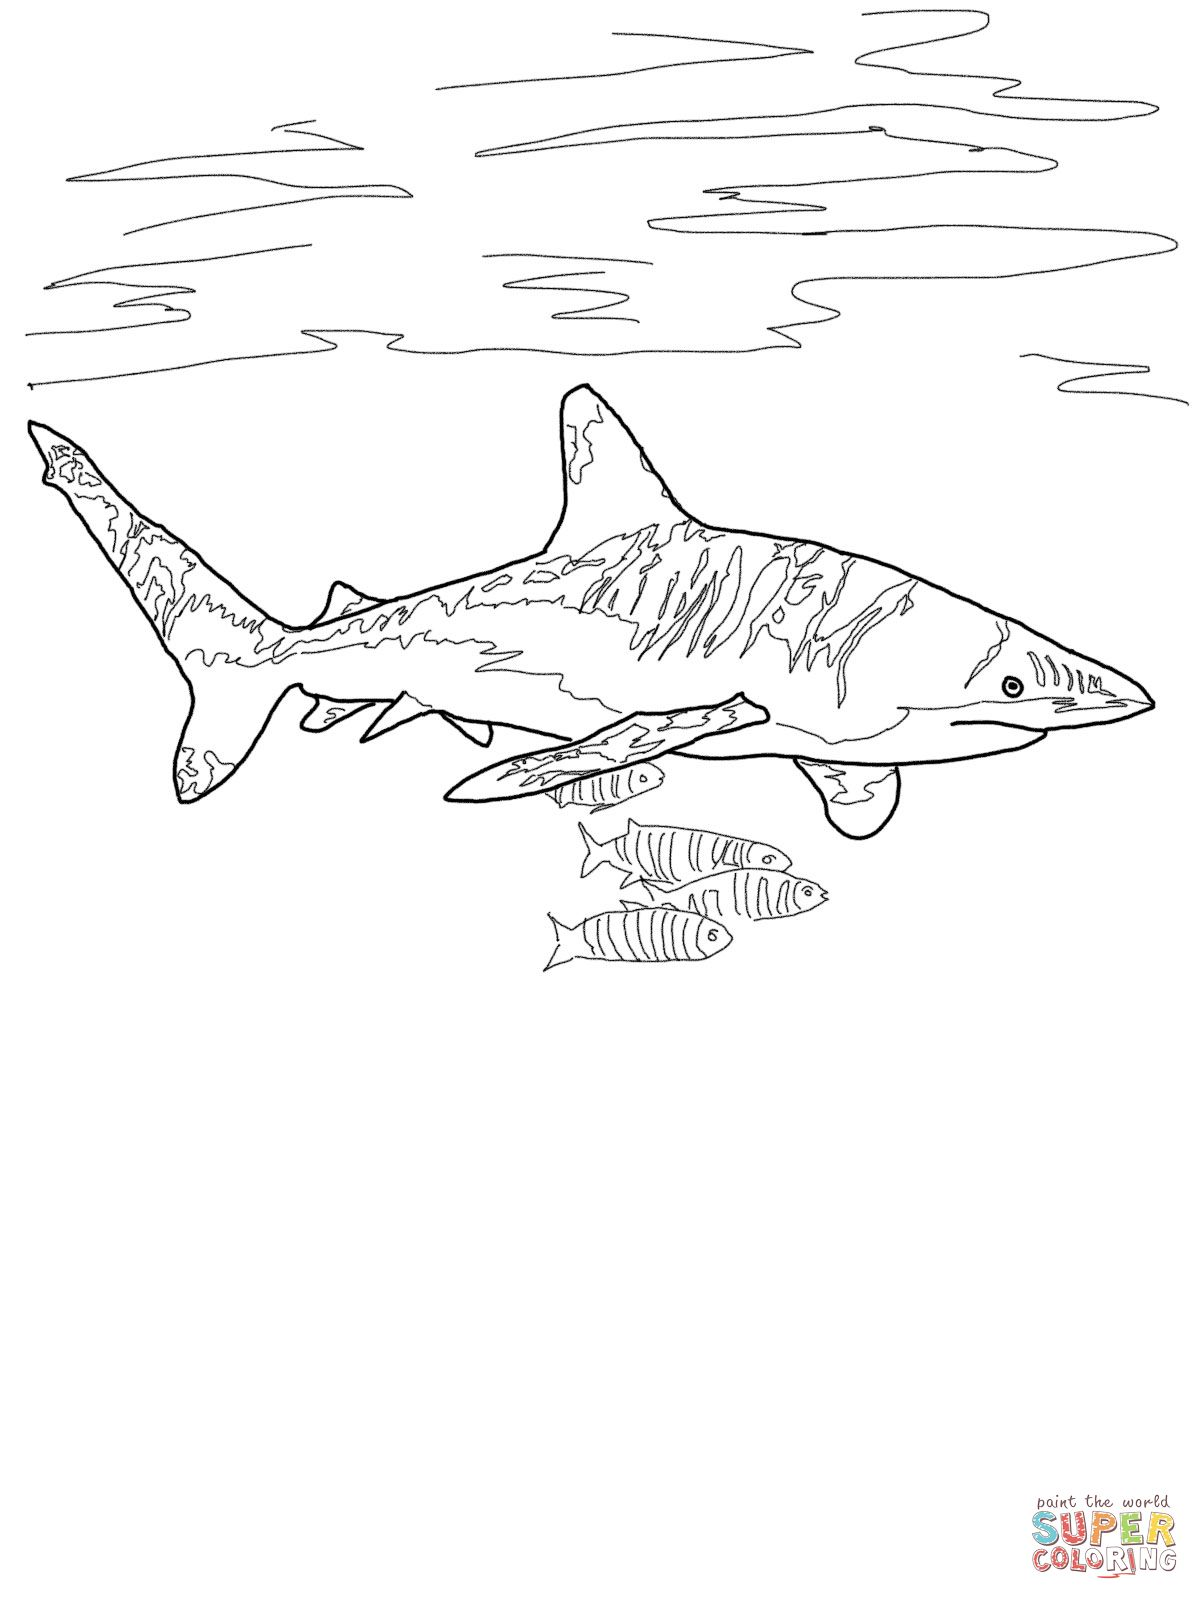 Oceanic Whitetip Shark | Coloring pages for kids, Shark coloring pages,  Ocean coloring pages